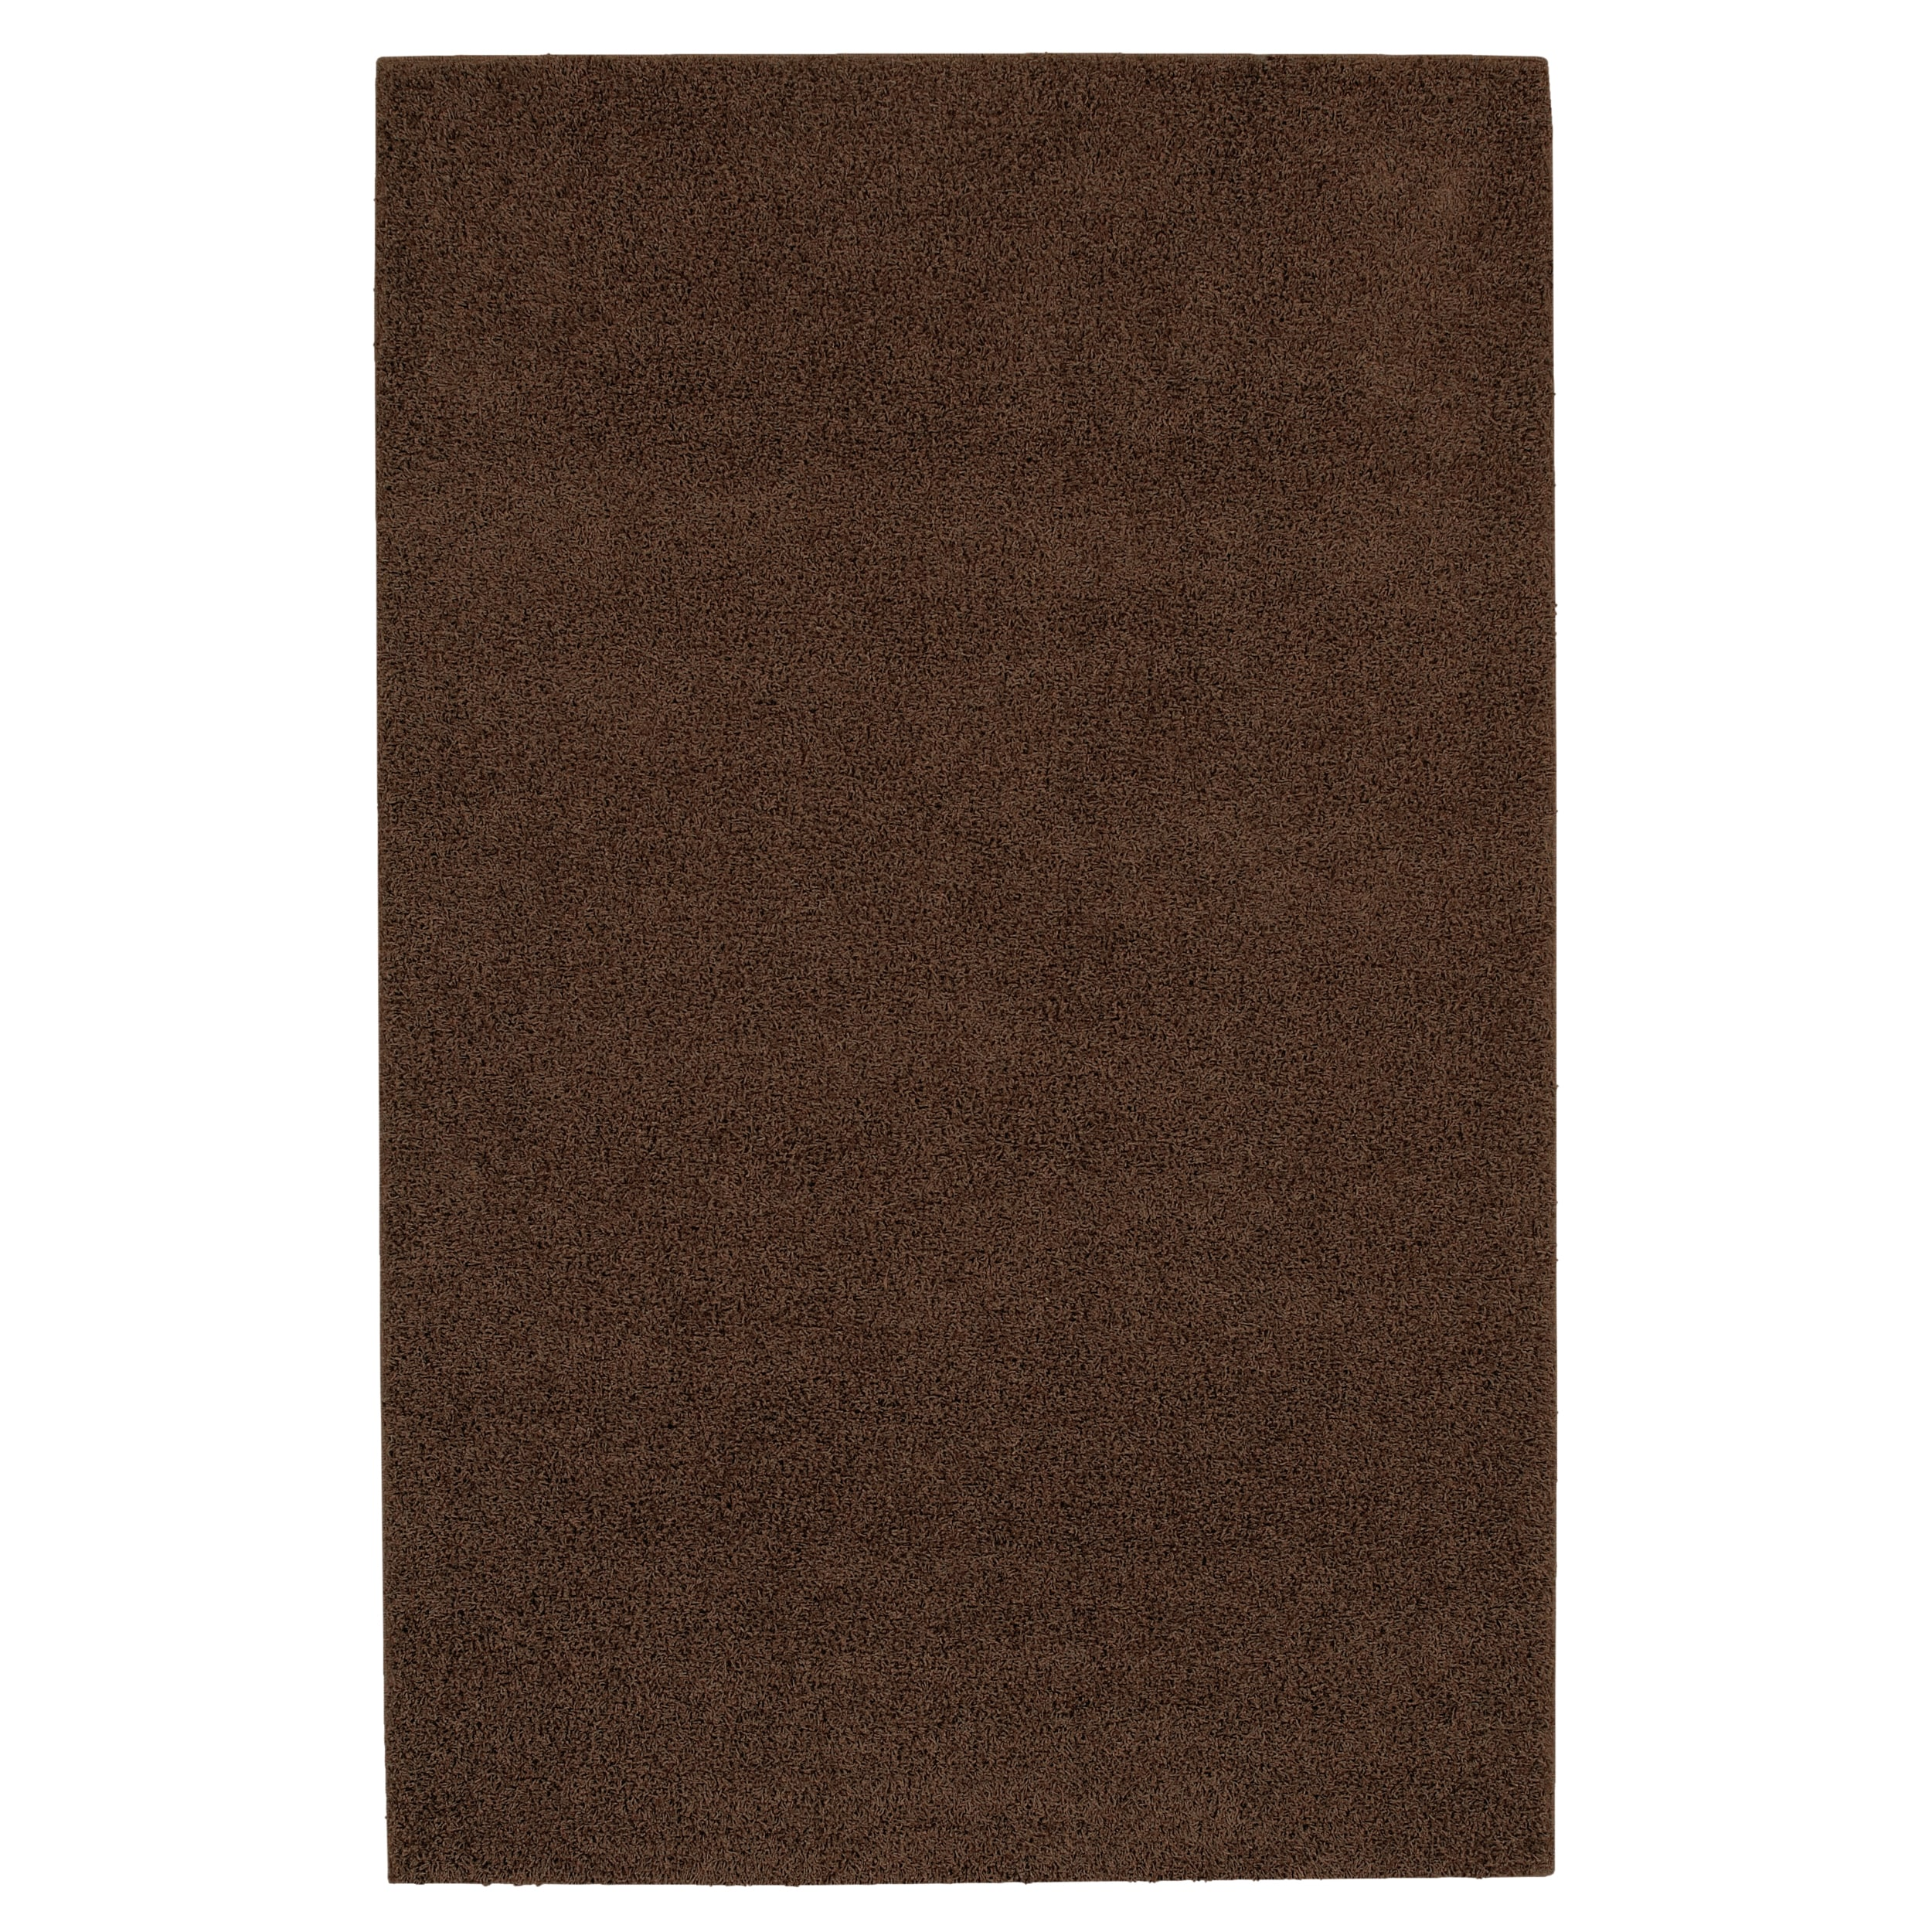 Solid Shag Brown Rug (5' x 8')